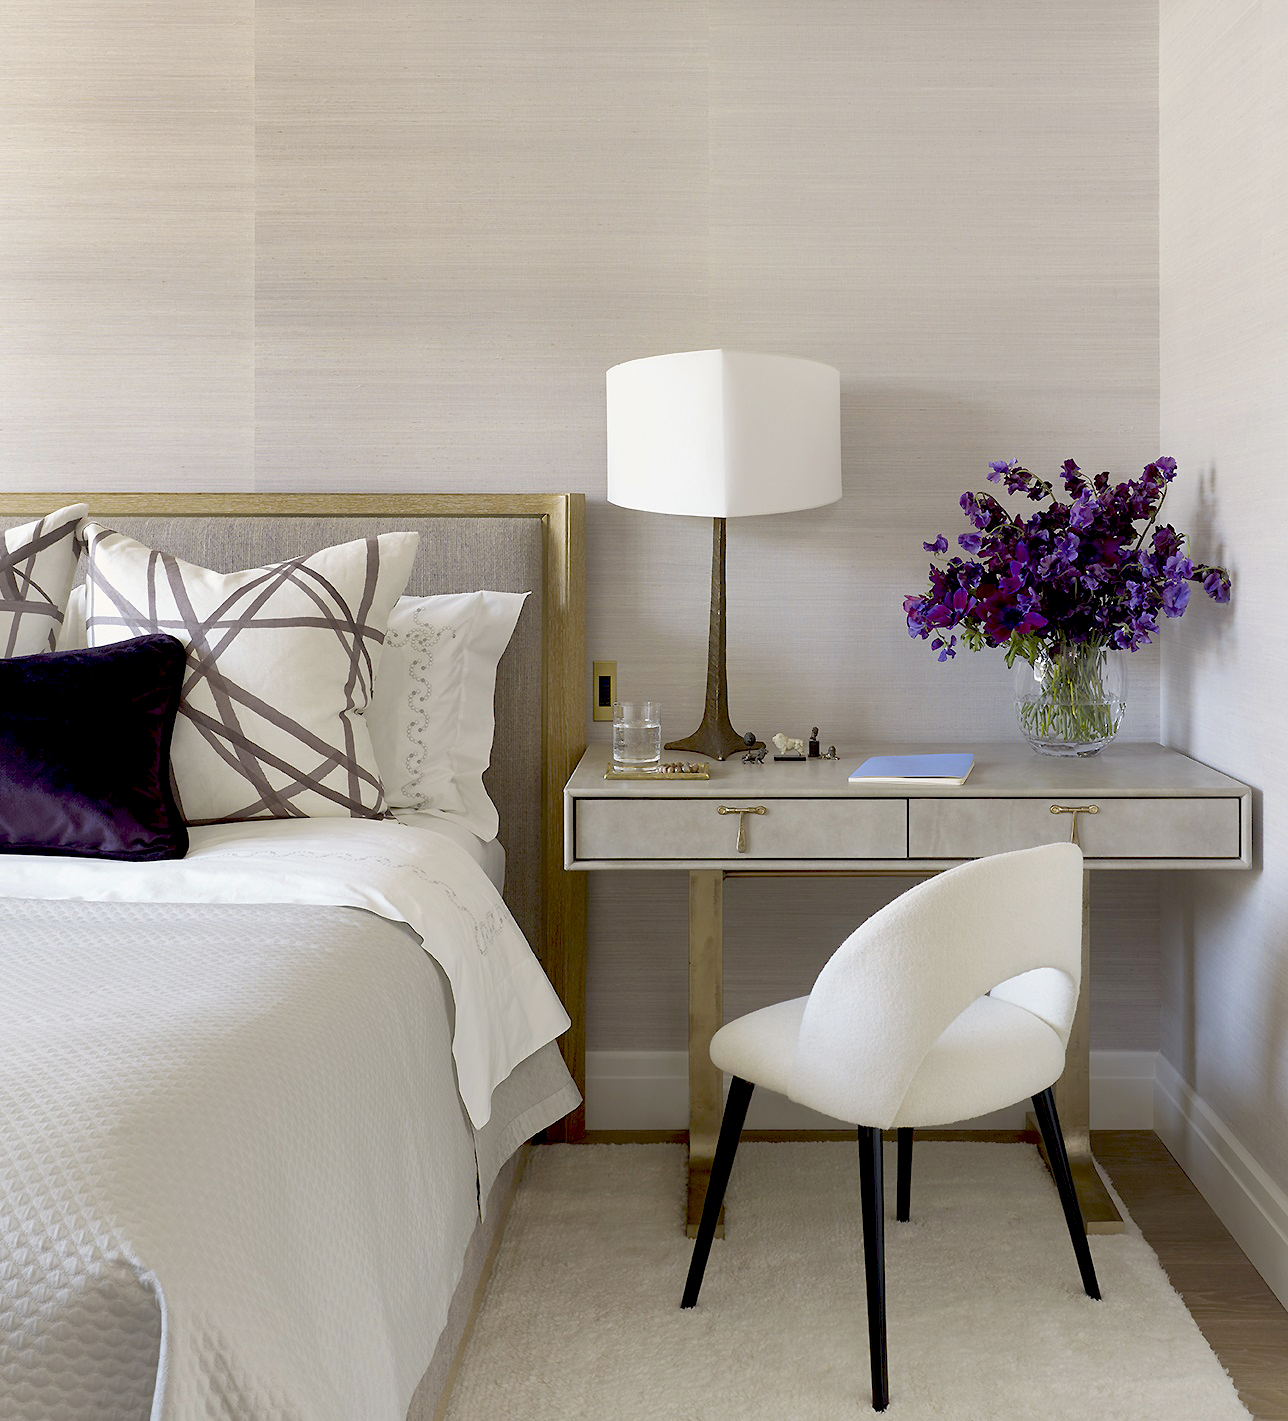 Stonefox 115 East 67th Street Master Bedroom Lamp Sidetable MEP designed by 2L Engineering